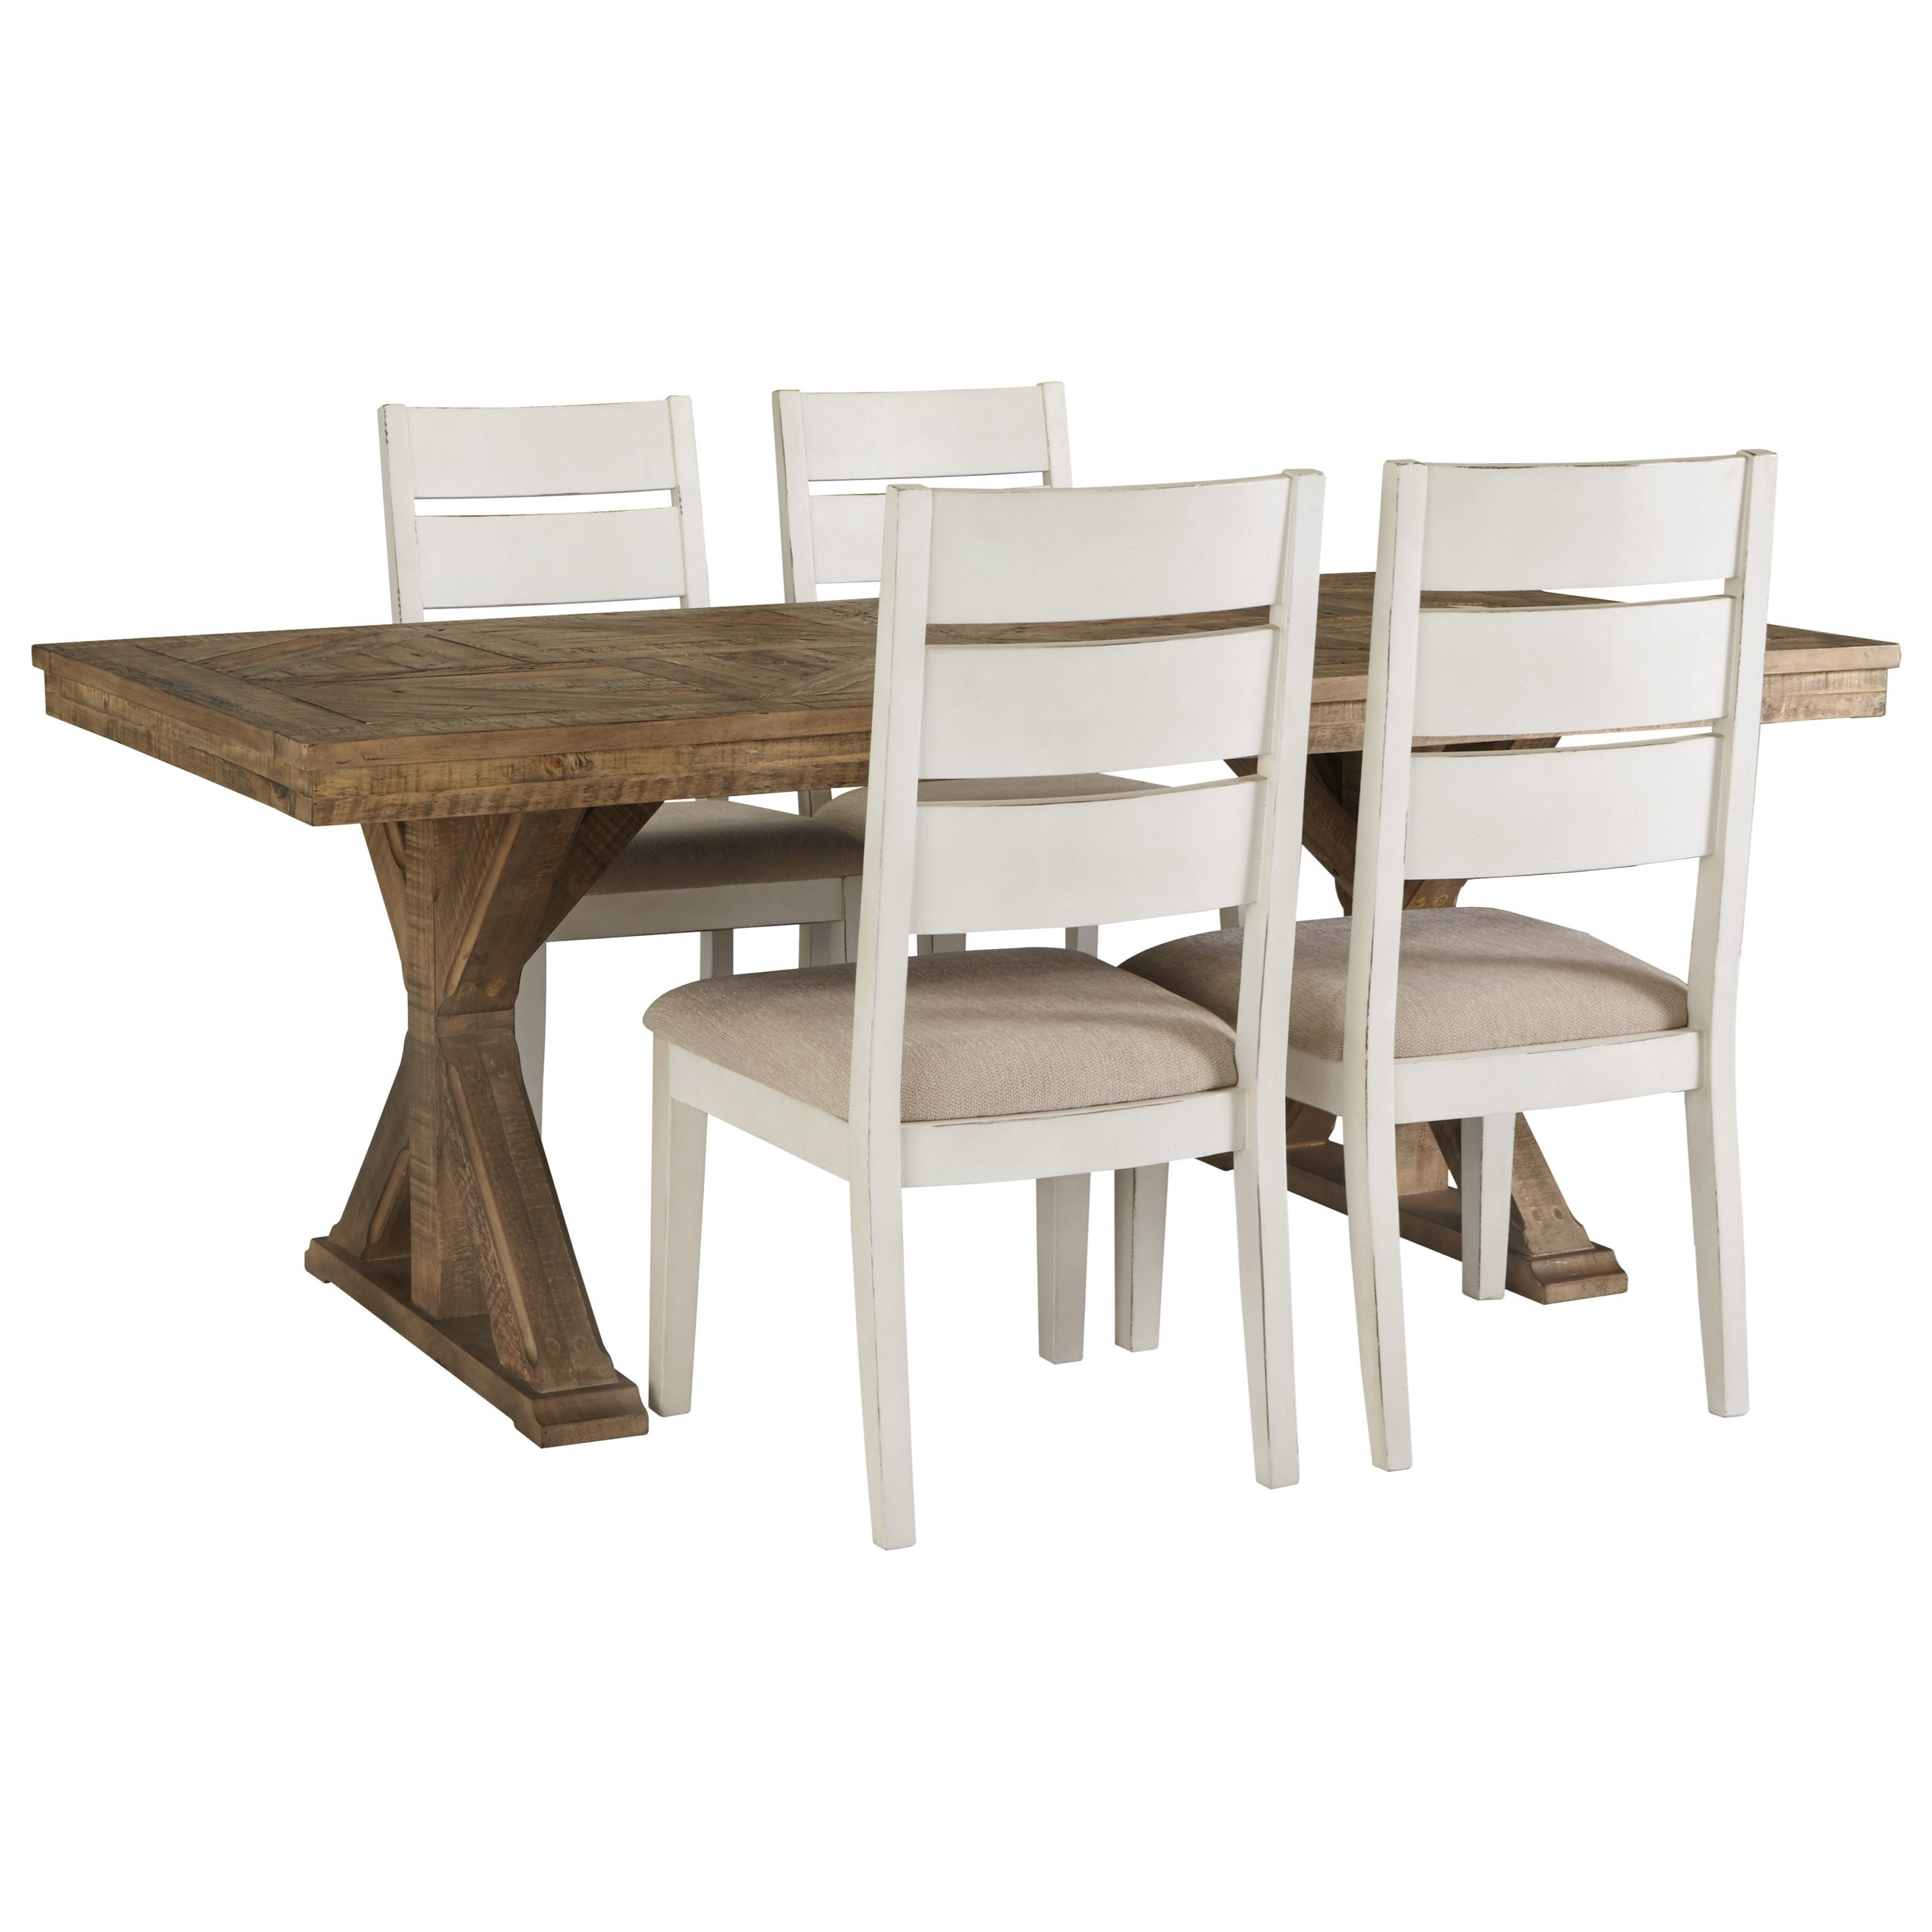 Grindleburg 5 Piece Rectangular Table and Chair Set by Signature Design by Ashley at Value City Furniture